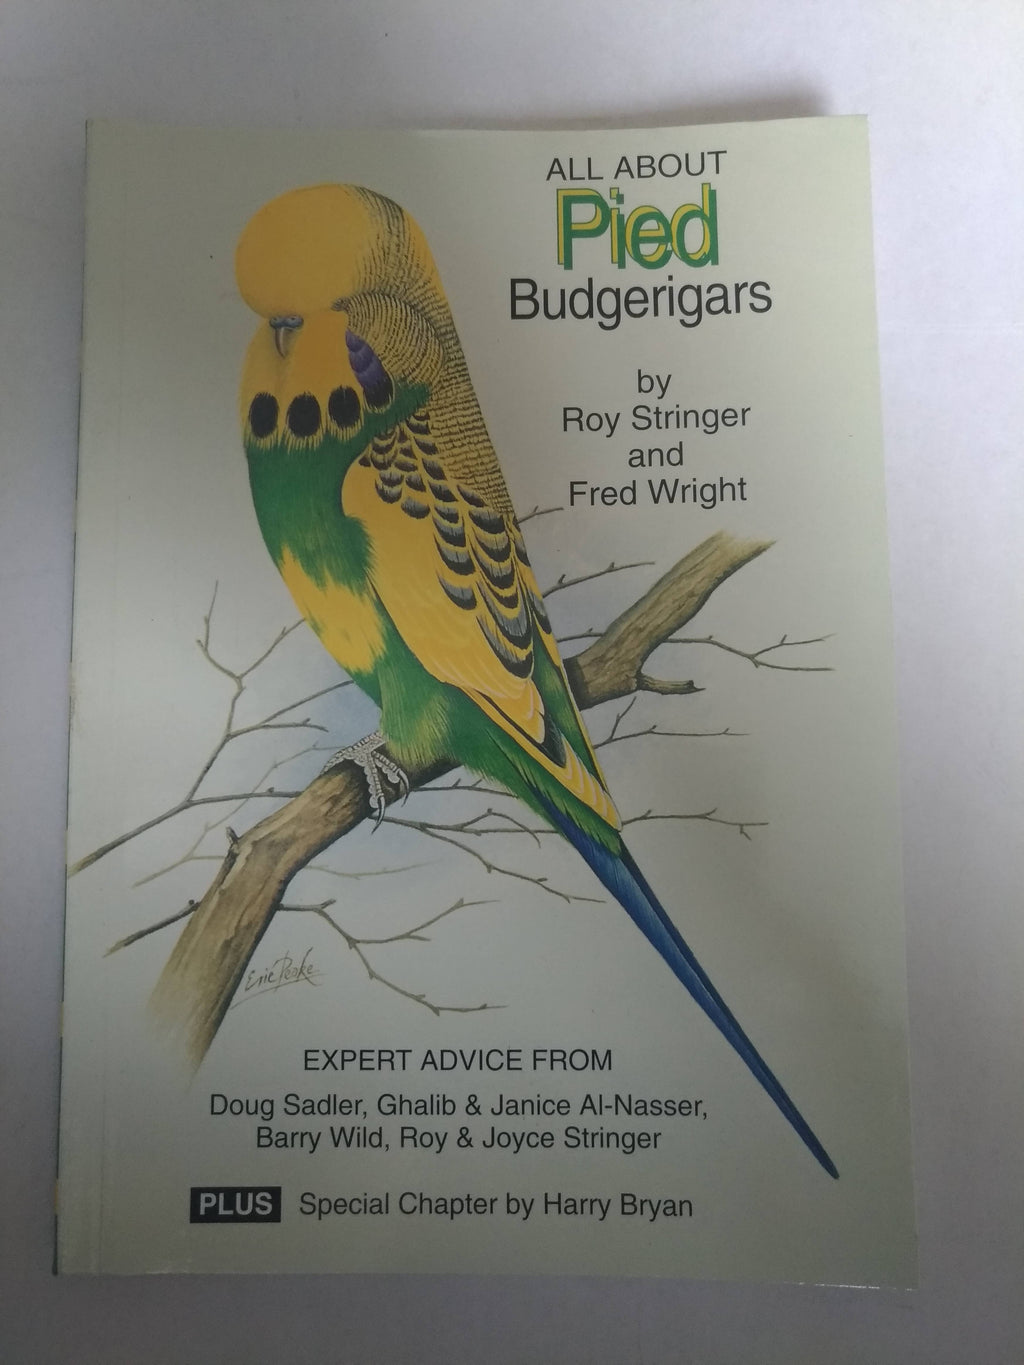 All About Pied Budgerigars by Fred Wright and Roy Stringer (New)